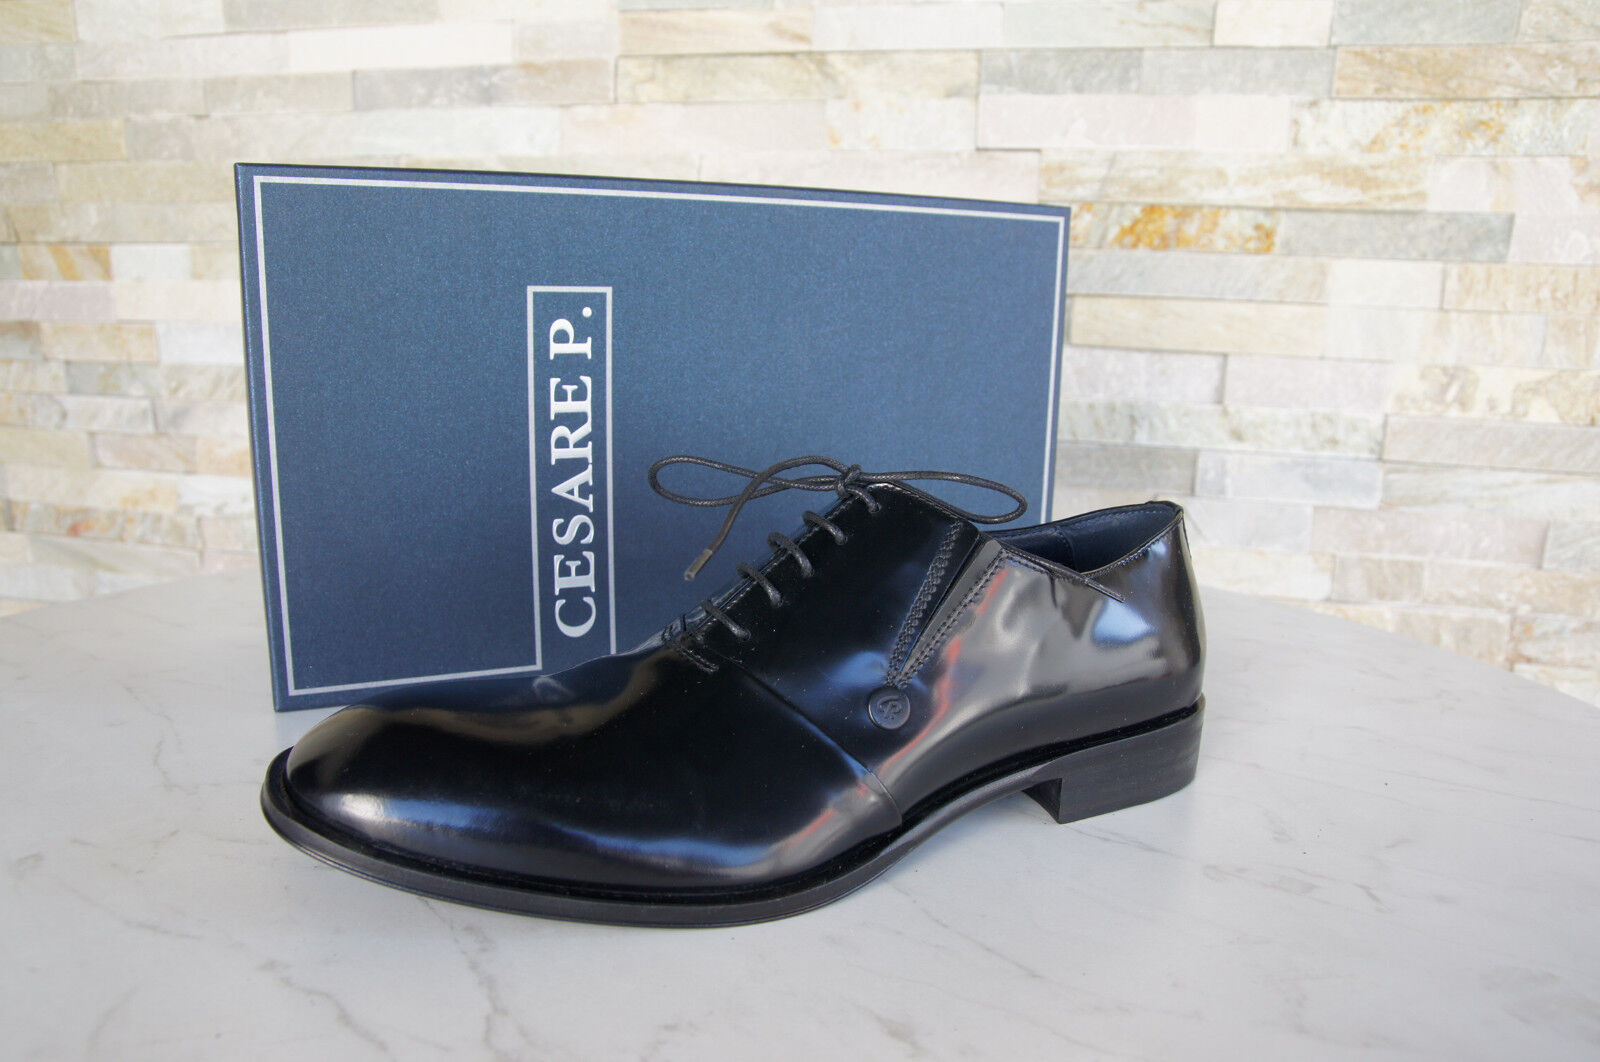 Cesare P.Paciotti Size 42 8 Lace-Up Loafers shoes Black New